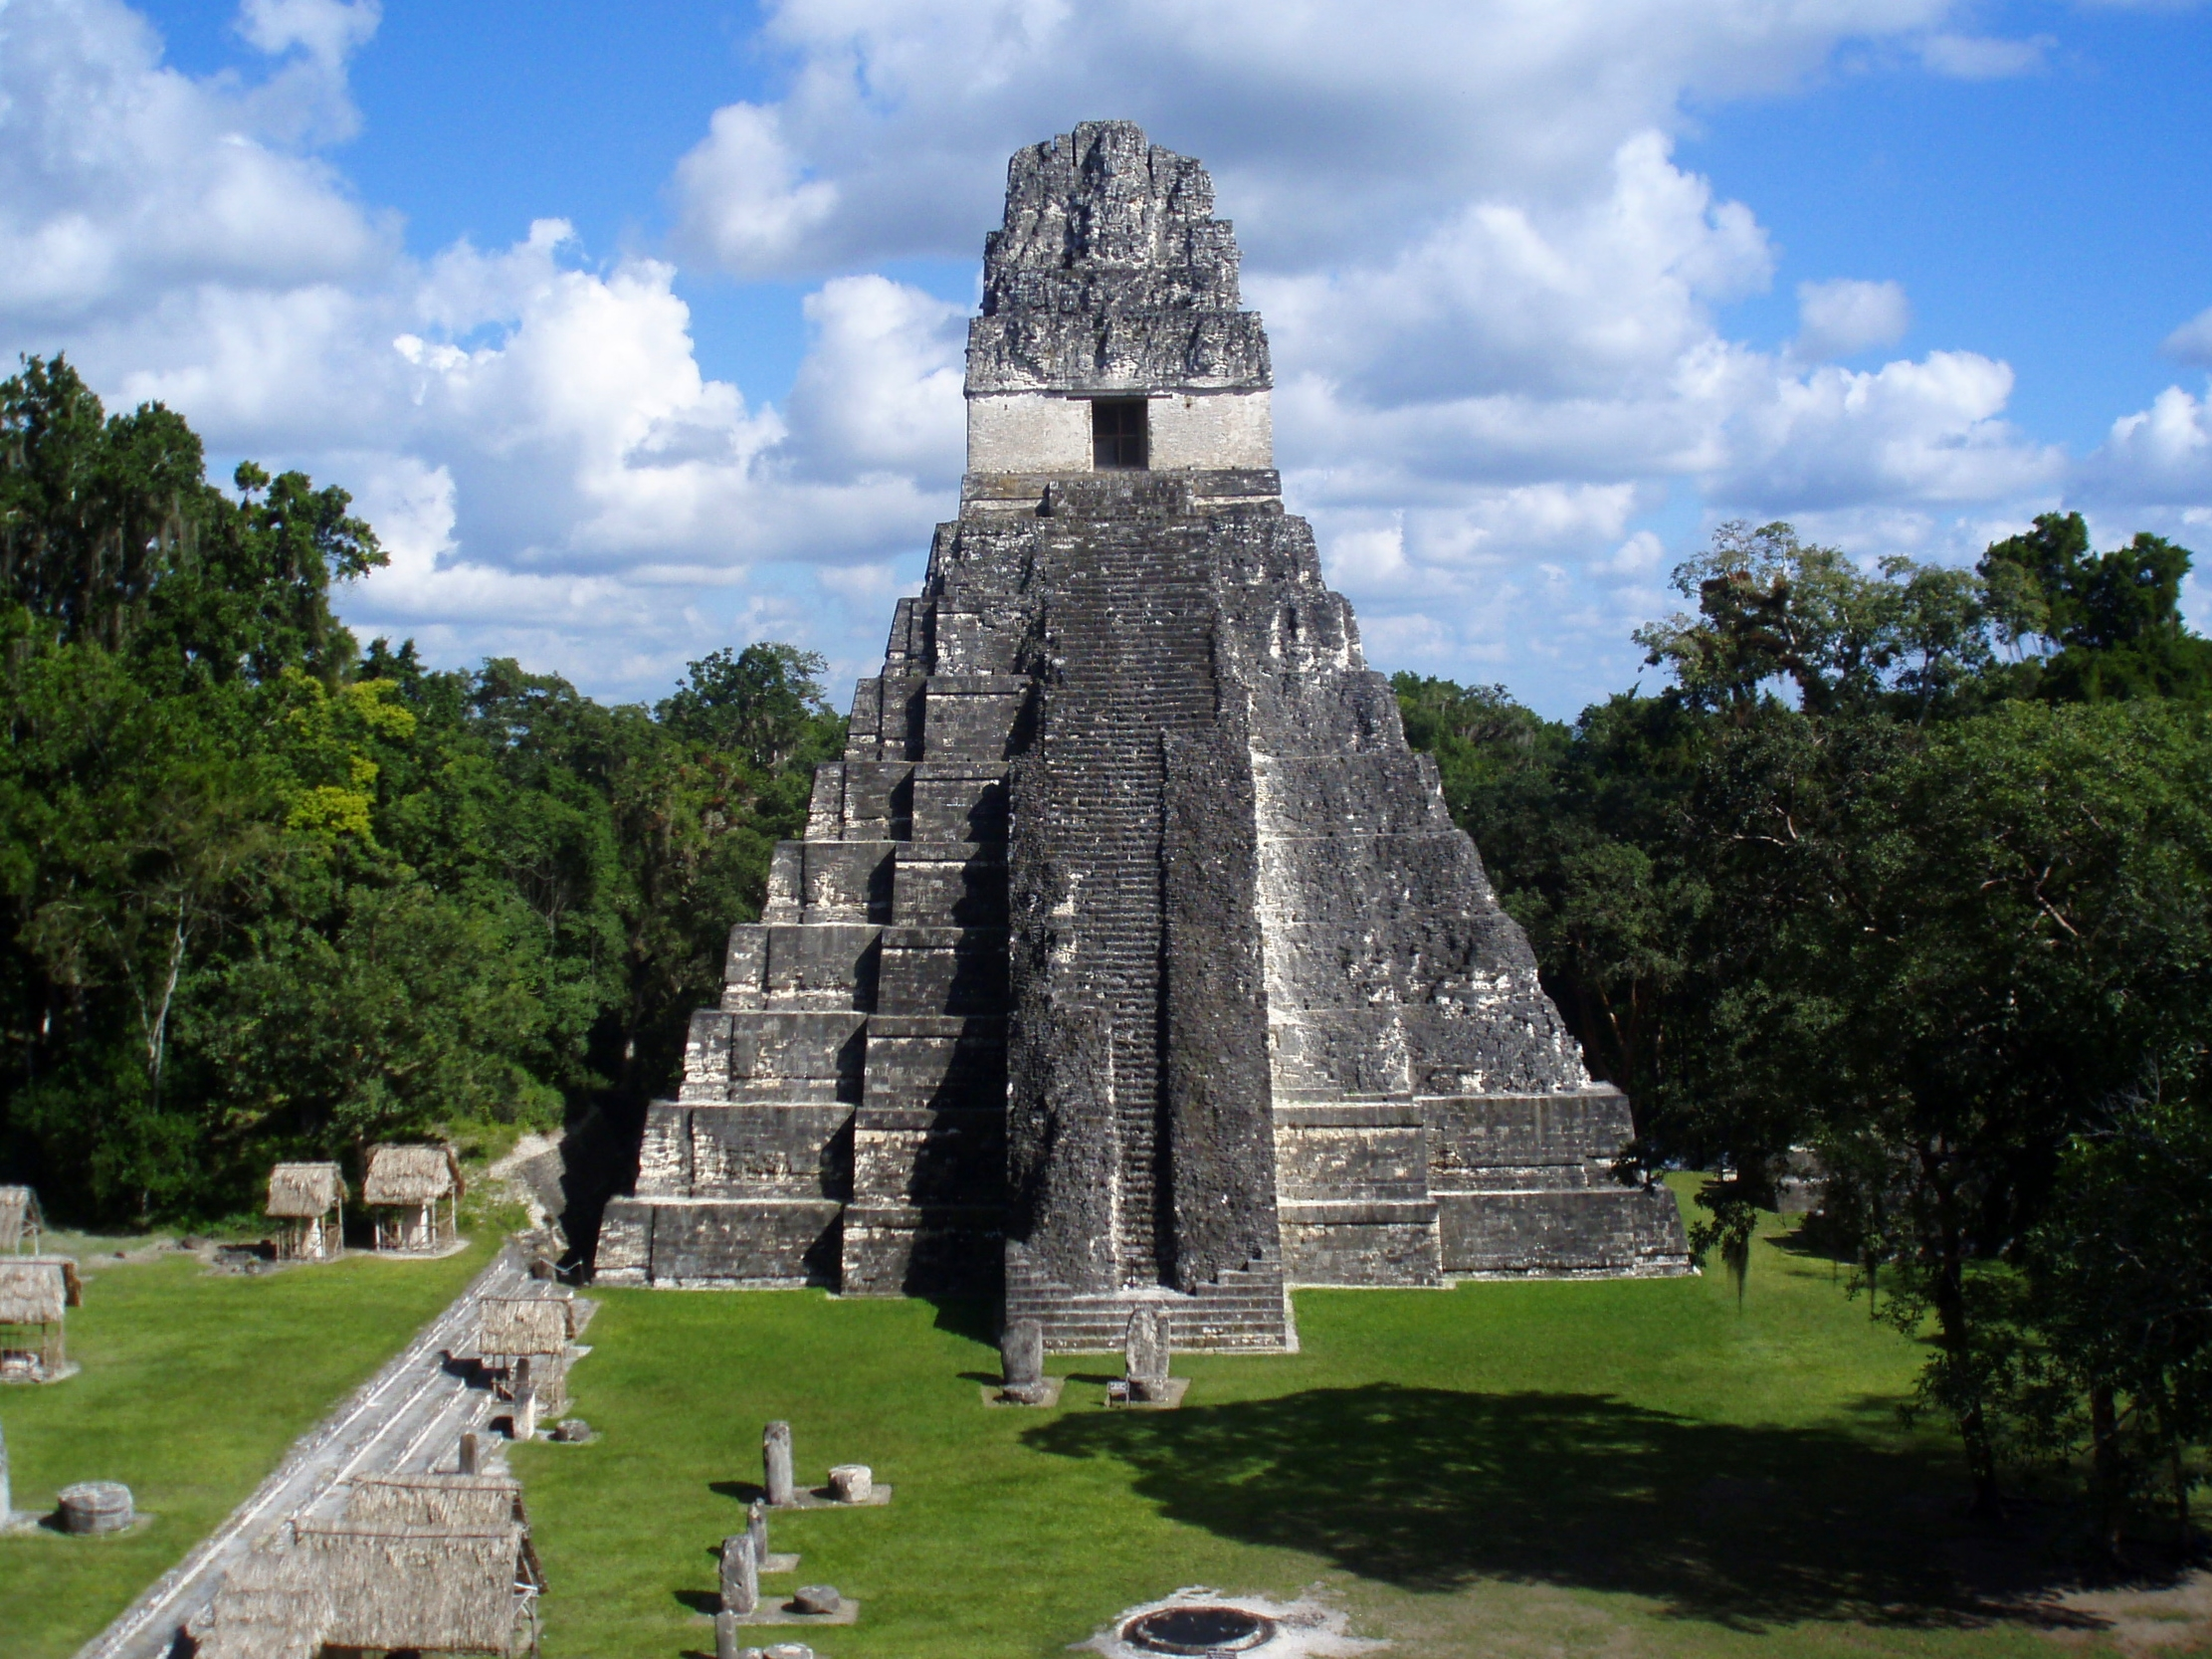 Temple I or the Temple of the Jaguar dominates the Central Acropolis at Tikal